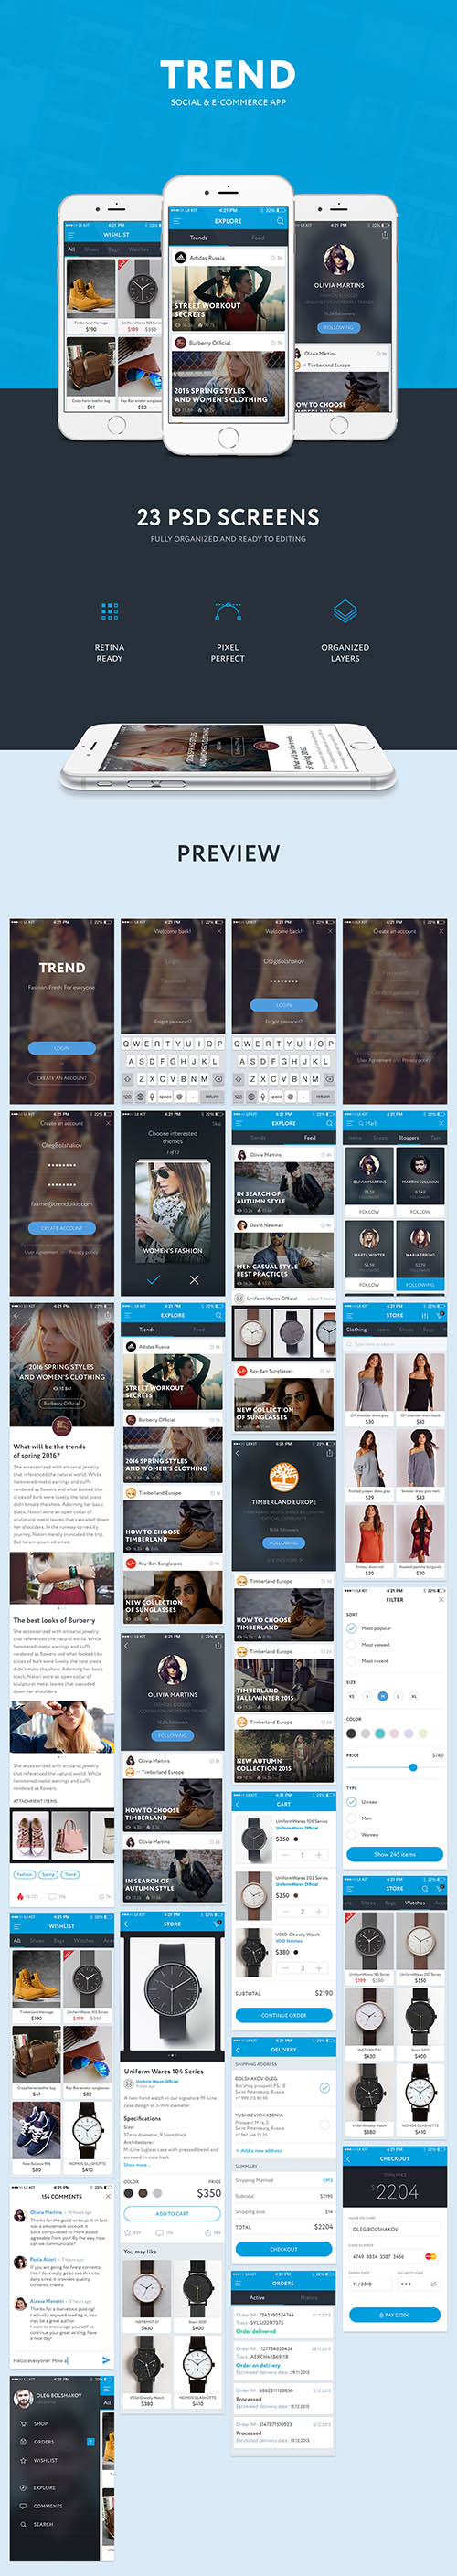 PSD Web Design - TREND - Social And Ecommetce App Ui Kit